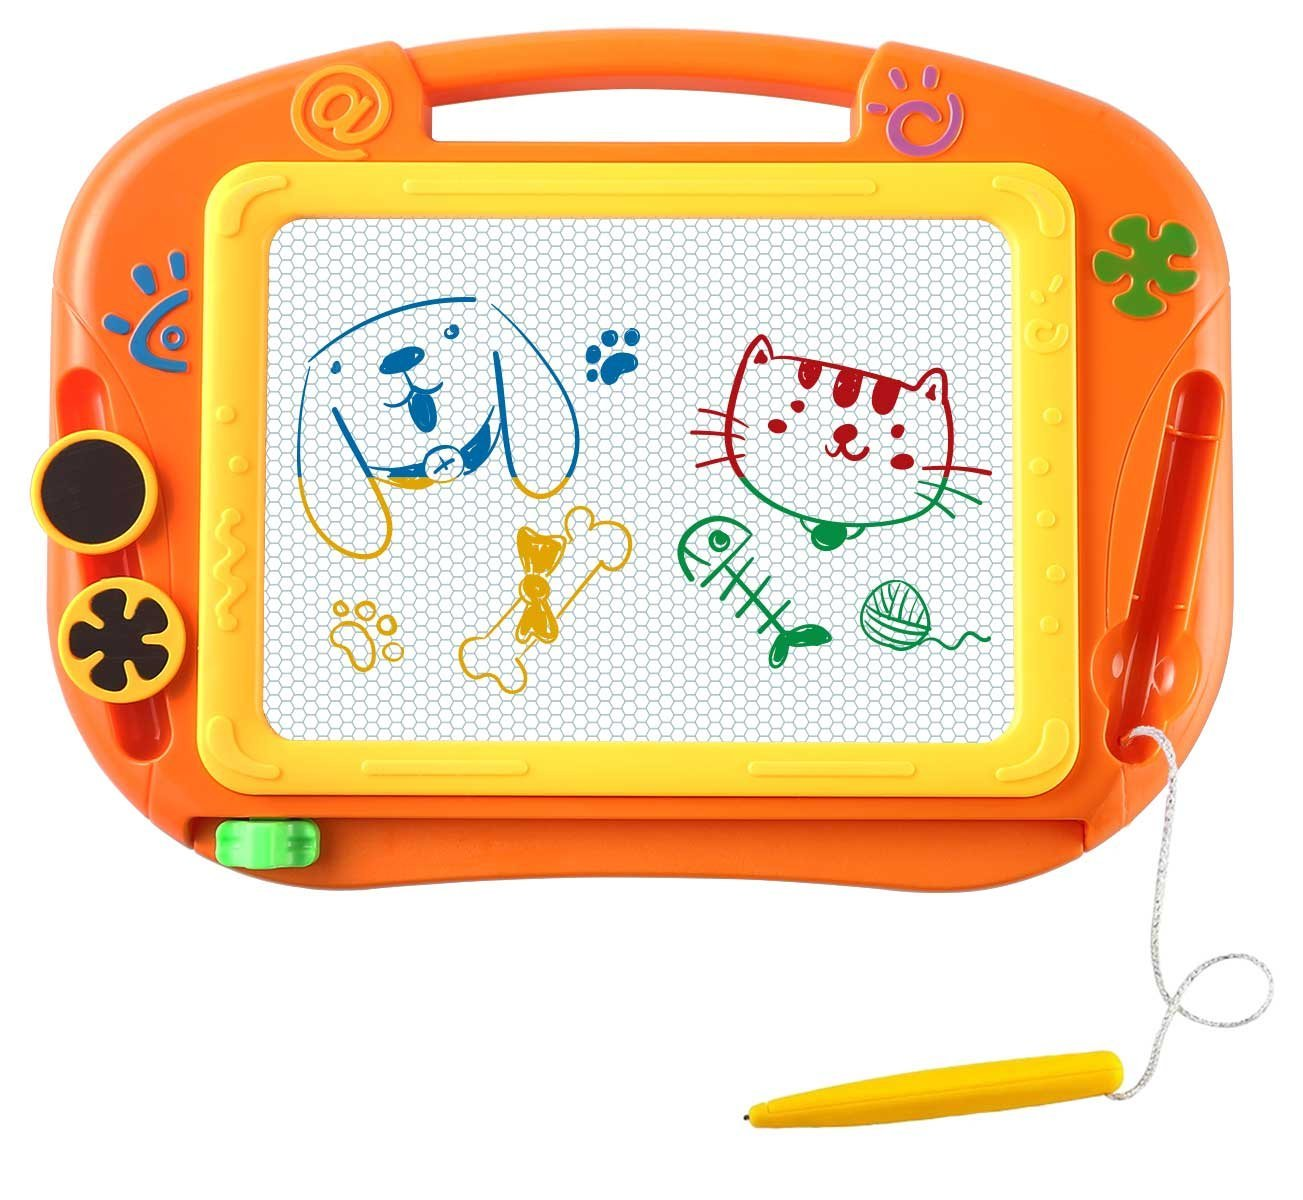 EEDAN Magnetic Drawing Board Games Toy Magna Doodle for Kids - Erasable Colorful Drawing Board Writing Sketching Pad for Kids Inspiration and Colors - Gift for Girls Boy Kids Children Travel Size JIA-07-HAOWANDE